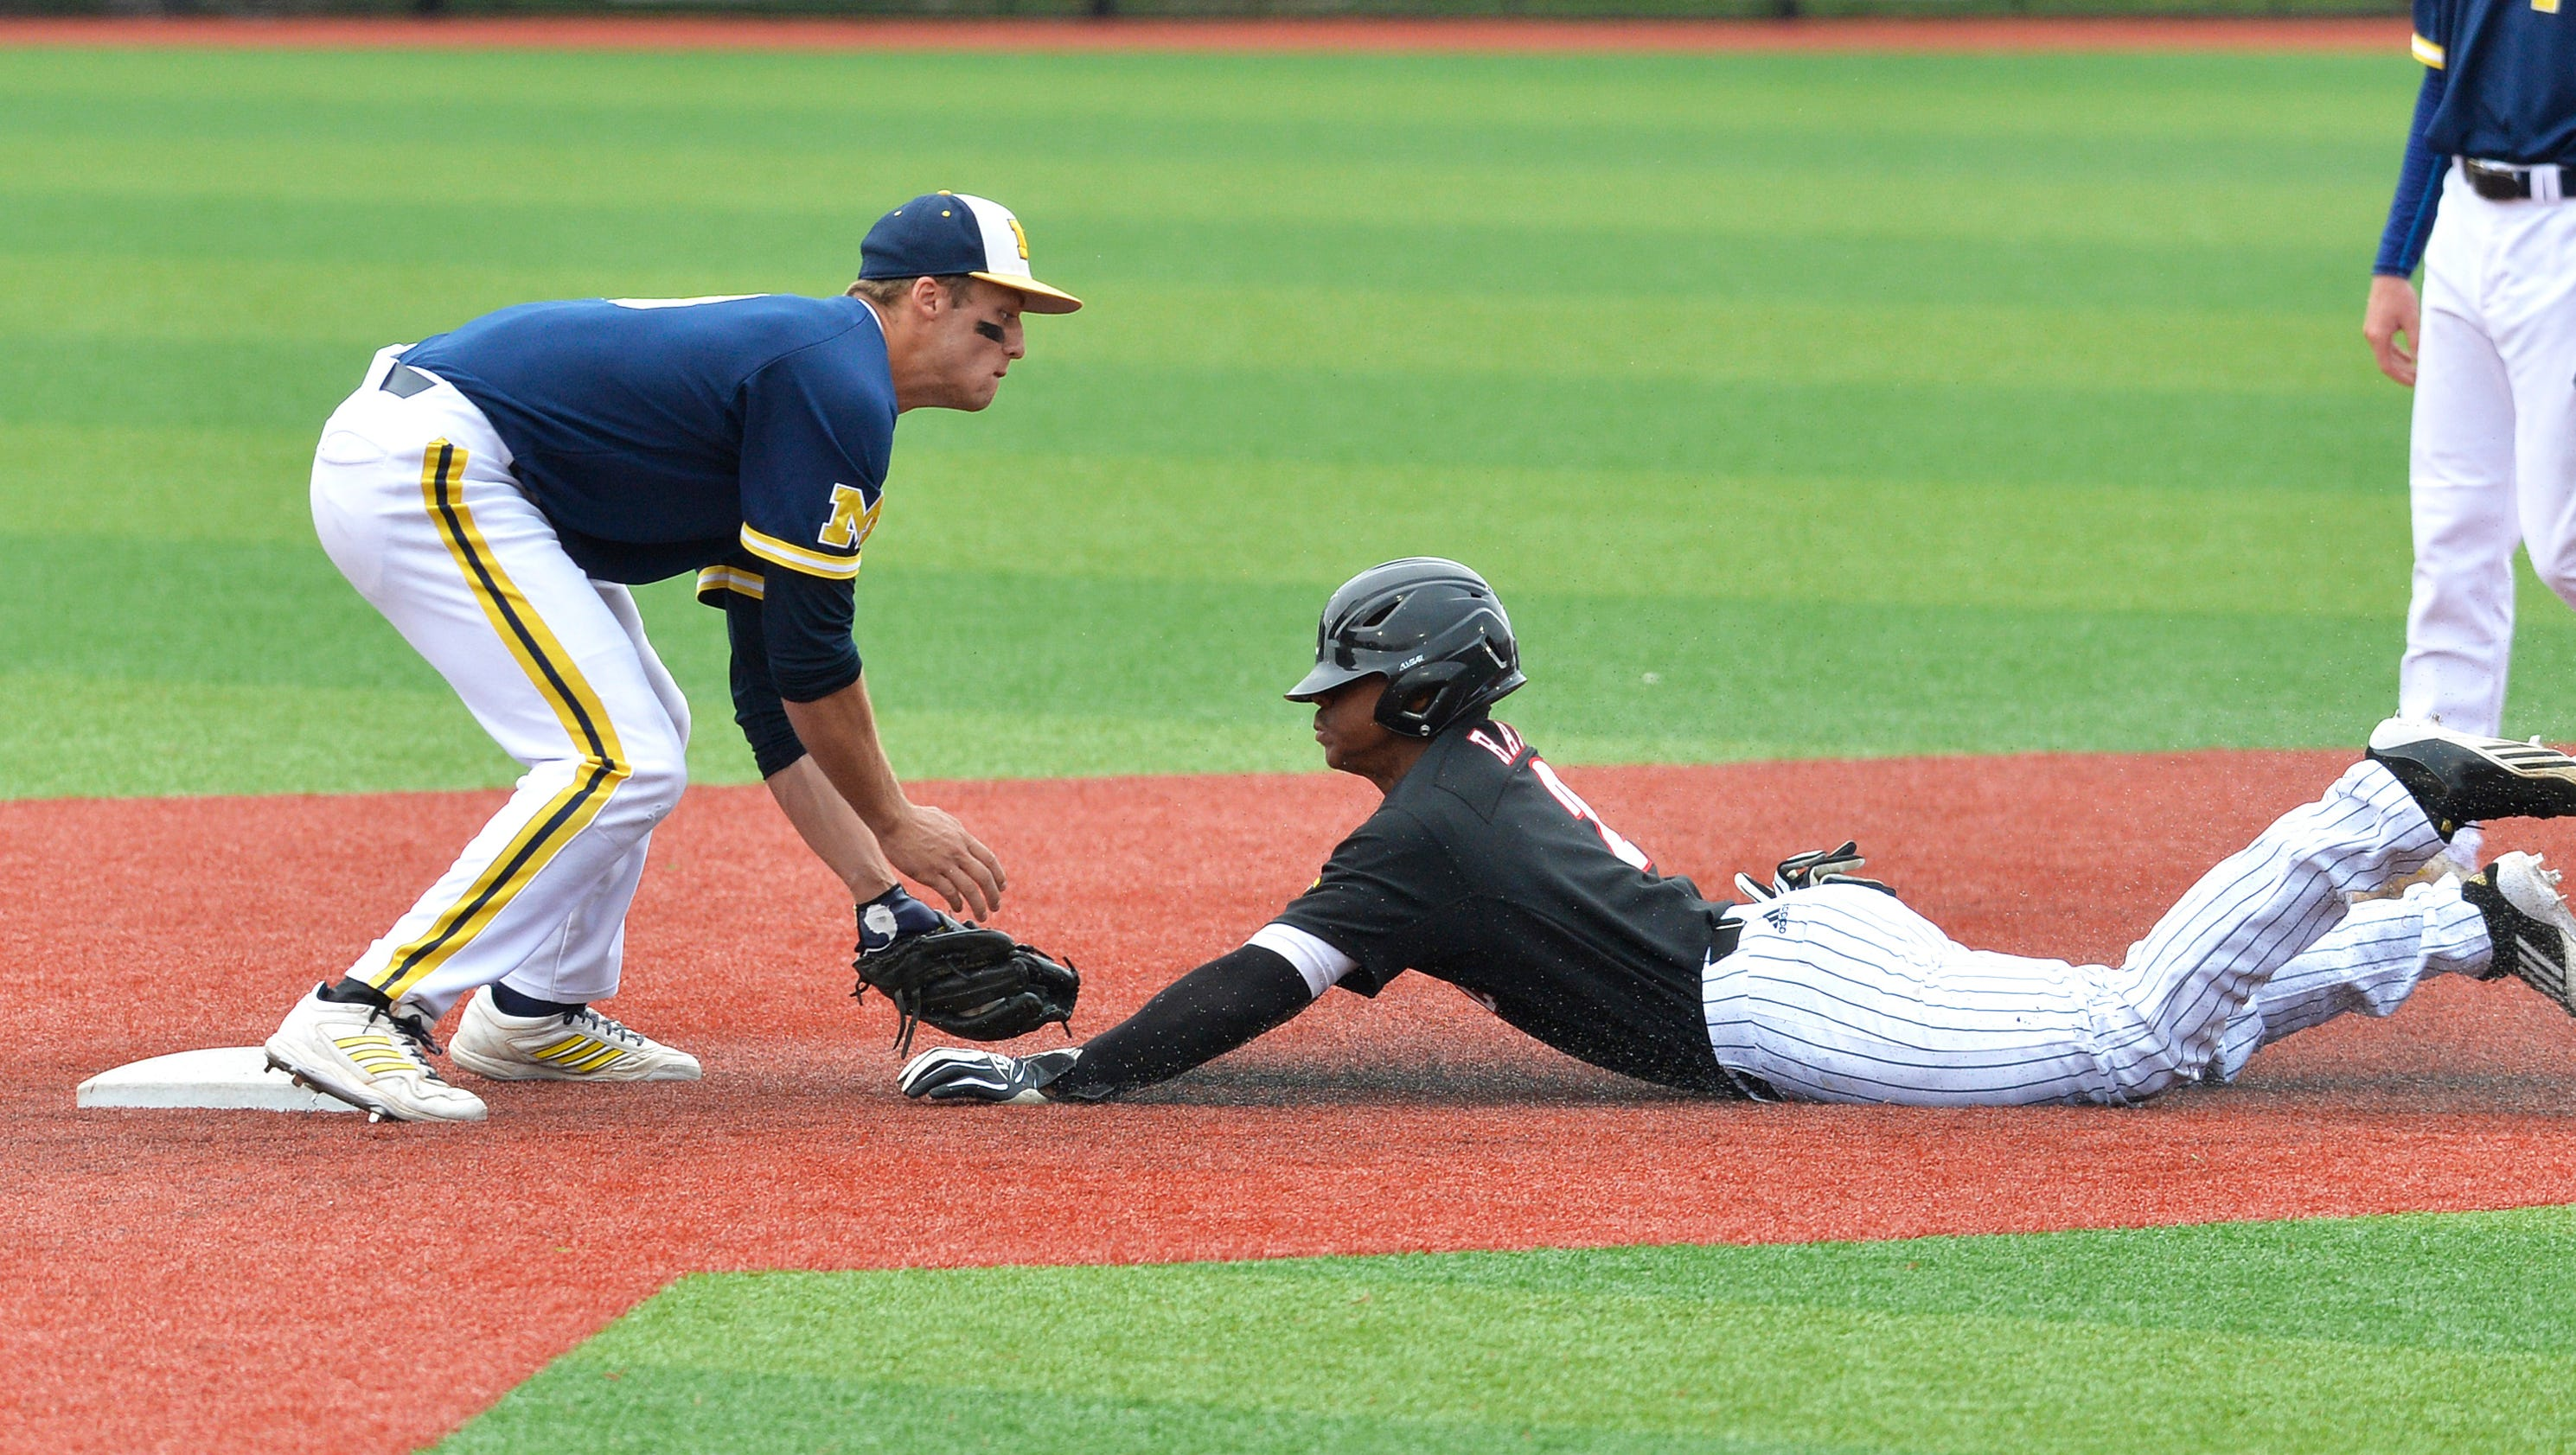 635687065141207239-ncaa-louisville-michigan-baseball-gnuaum8vp.1